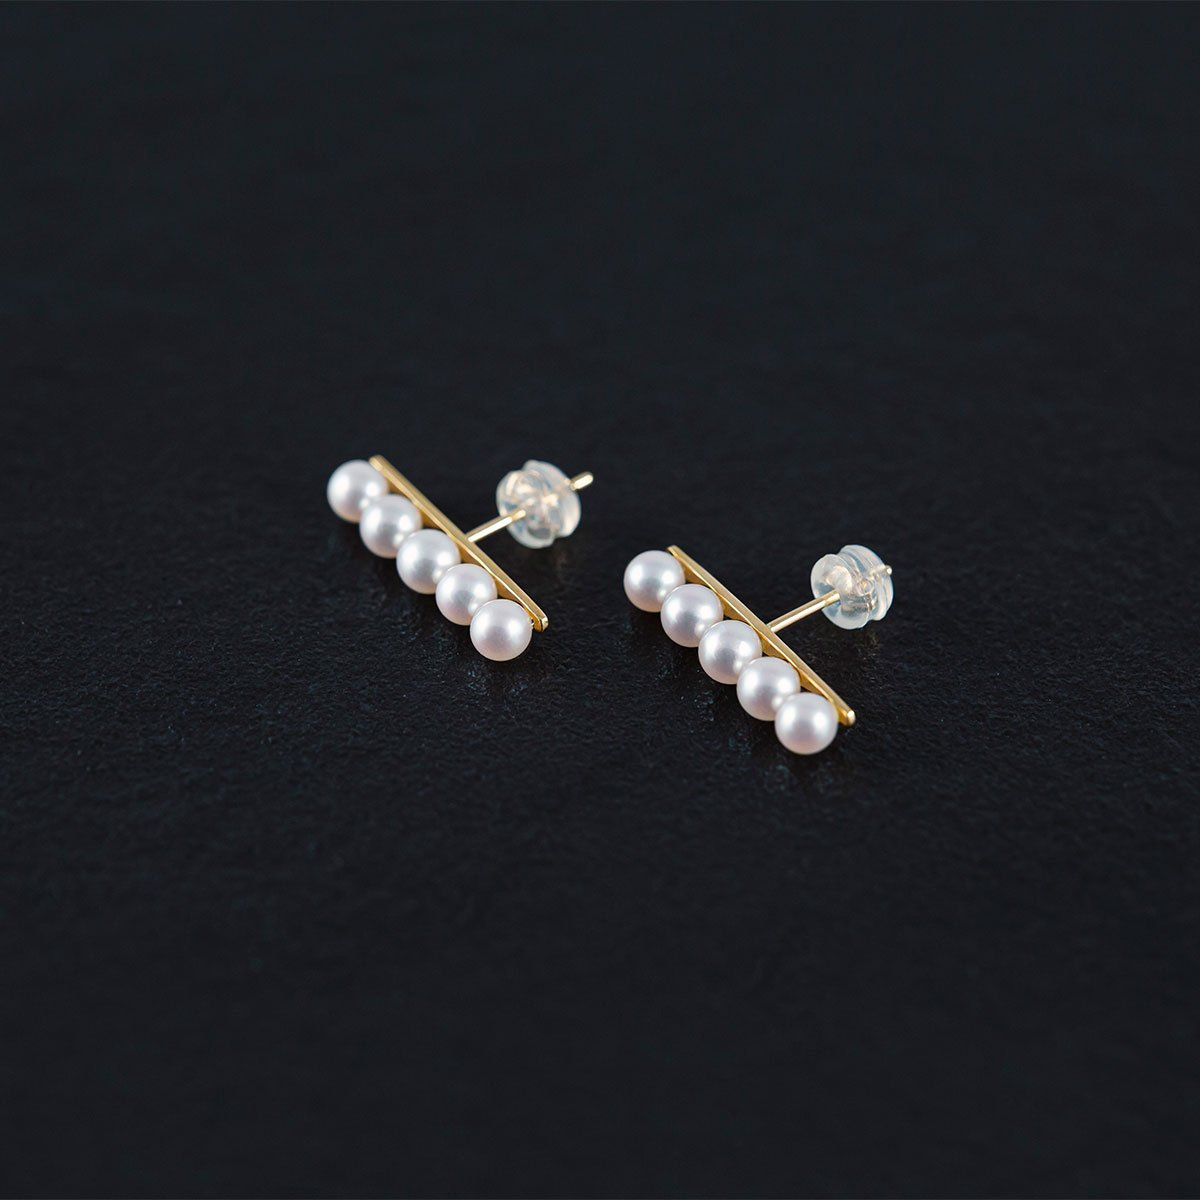 Japanese Akoya Pearl Earrings AAA 4mm